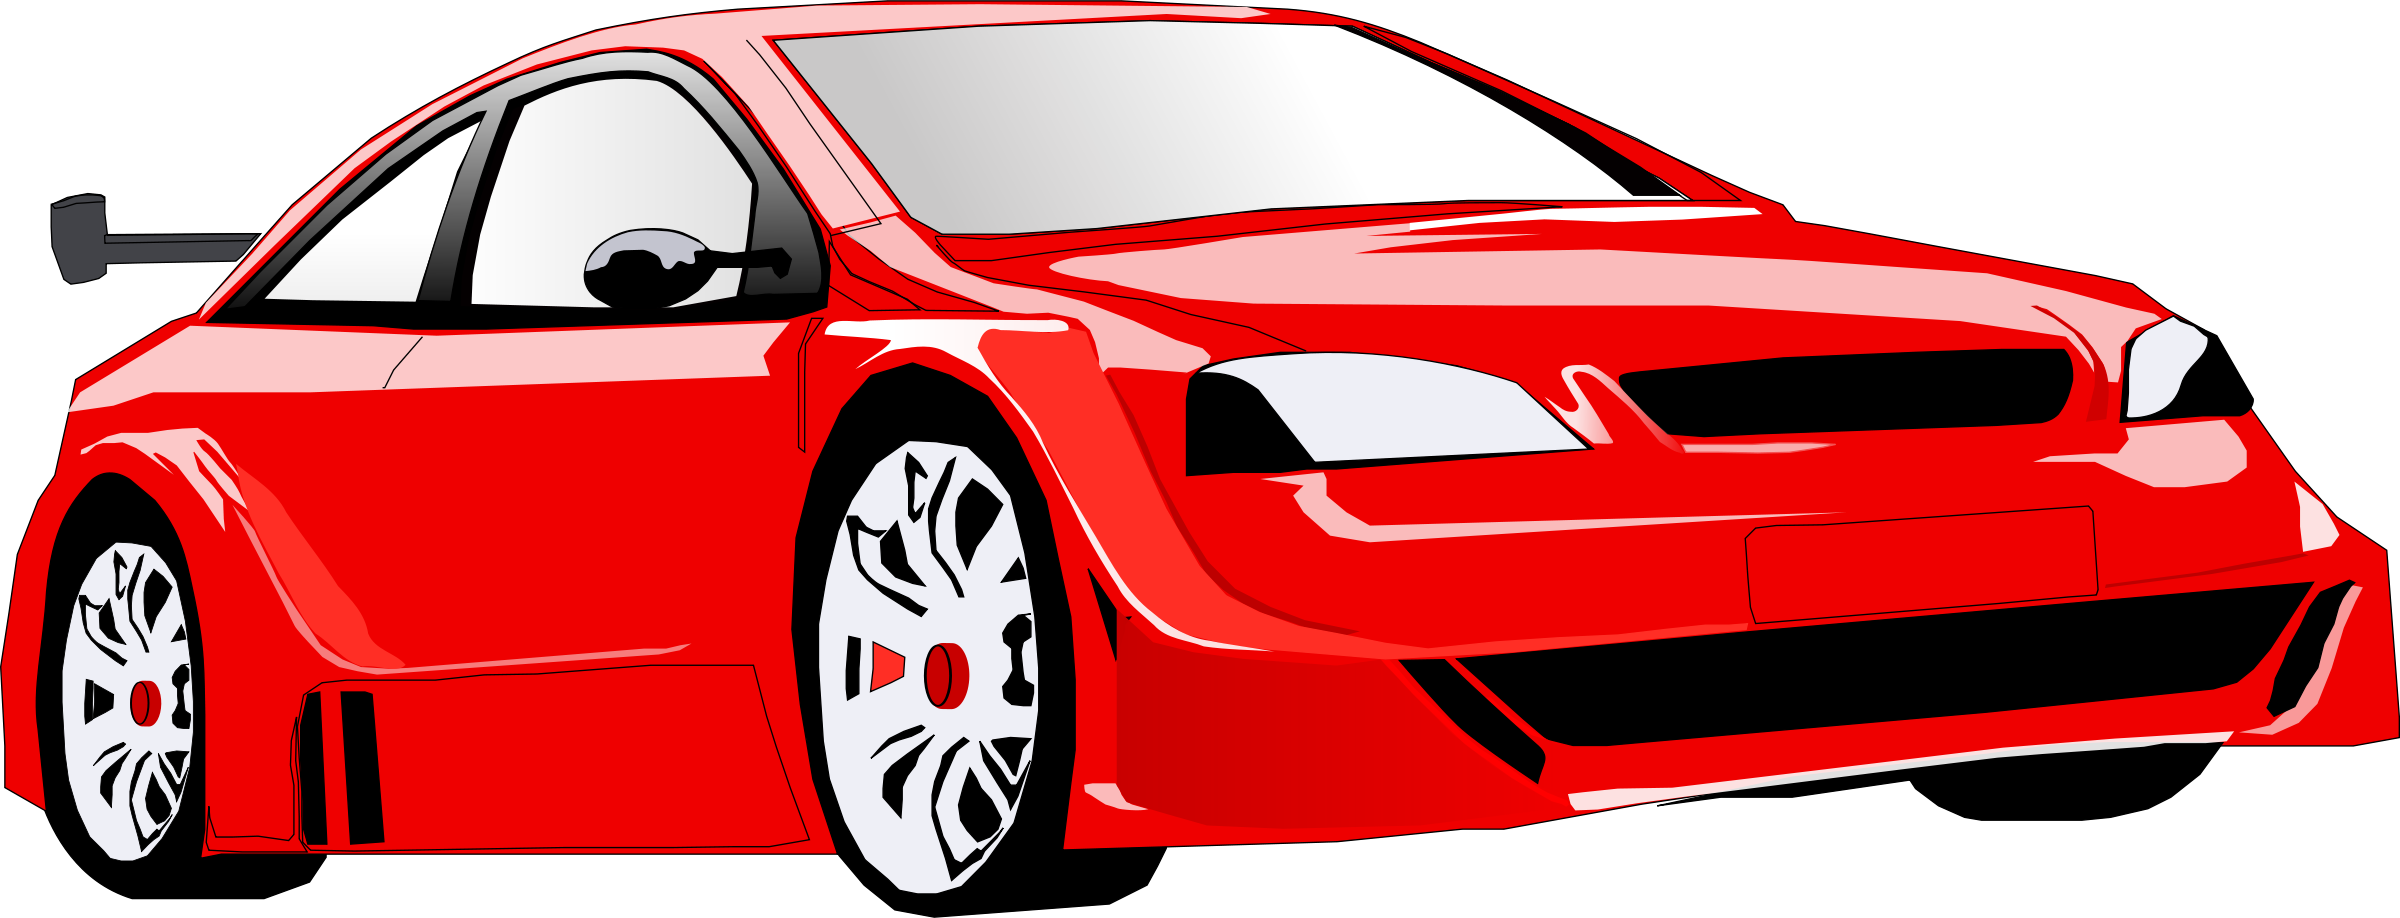 Cars car clipart free large images